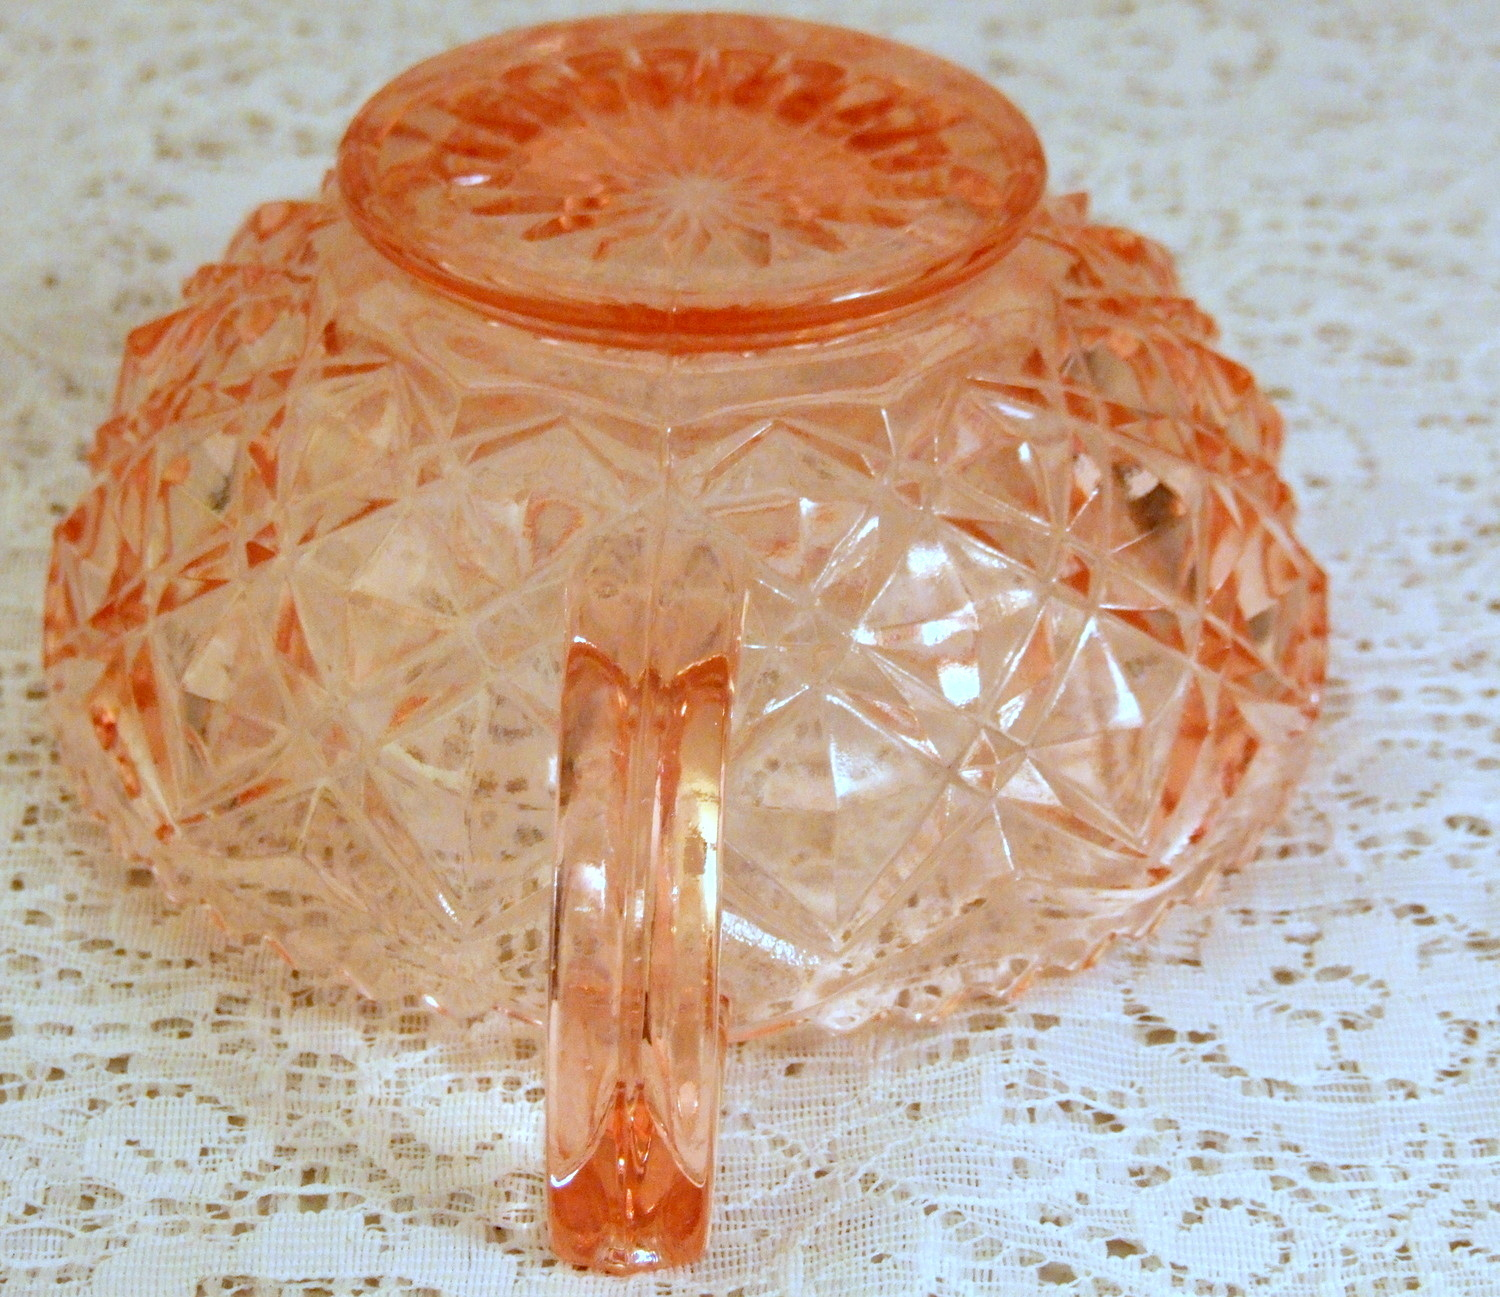 Imperial Depression Glass Diamond Block Little Jewel Pink Nappy or Jelly Bowl